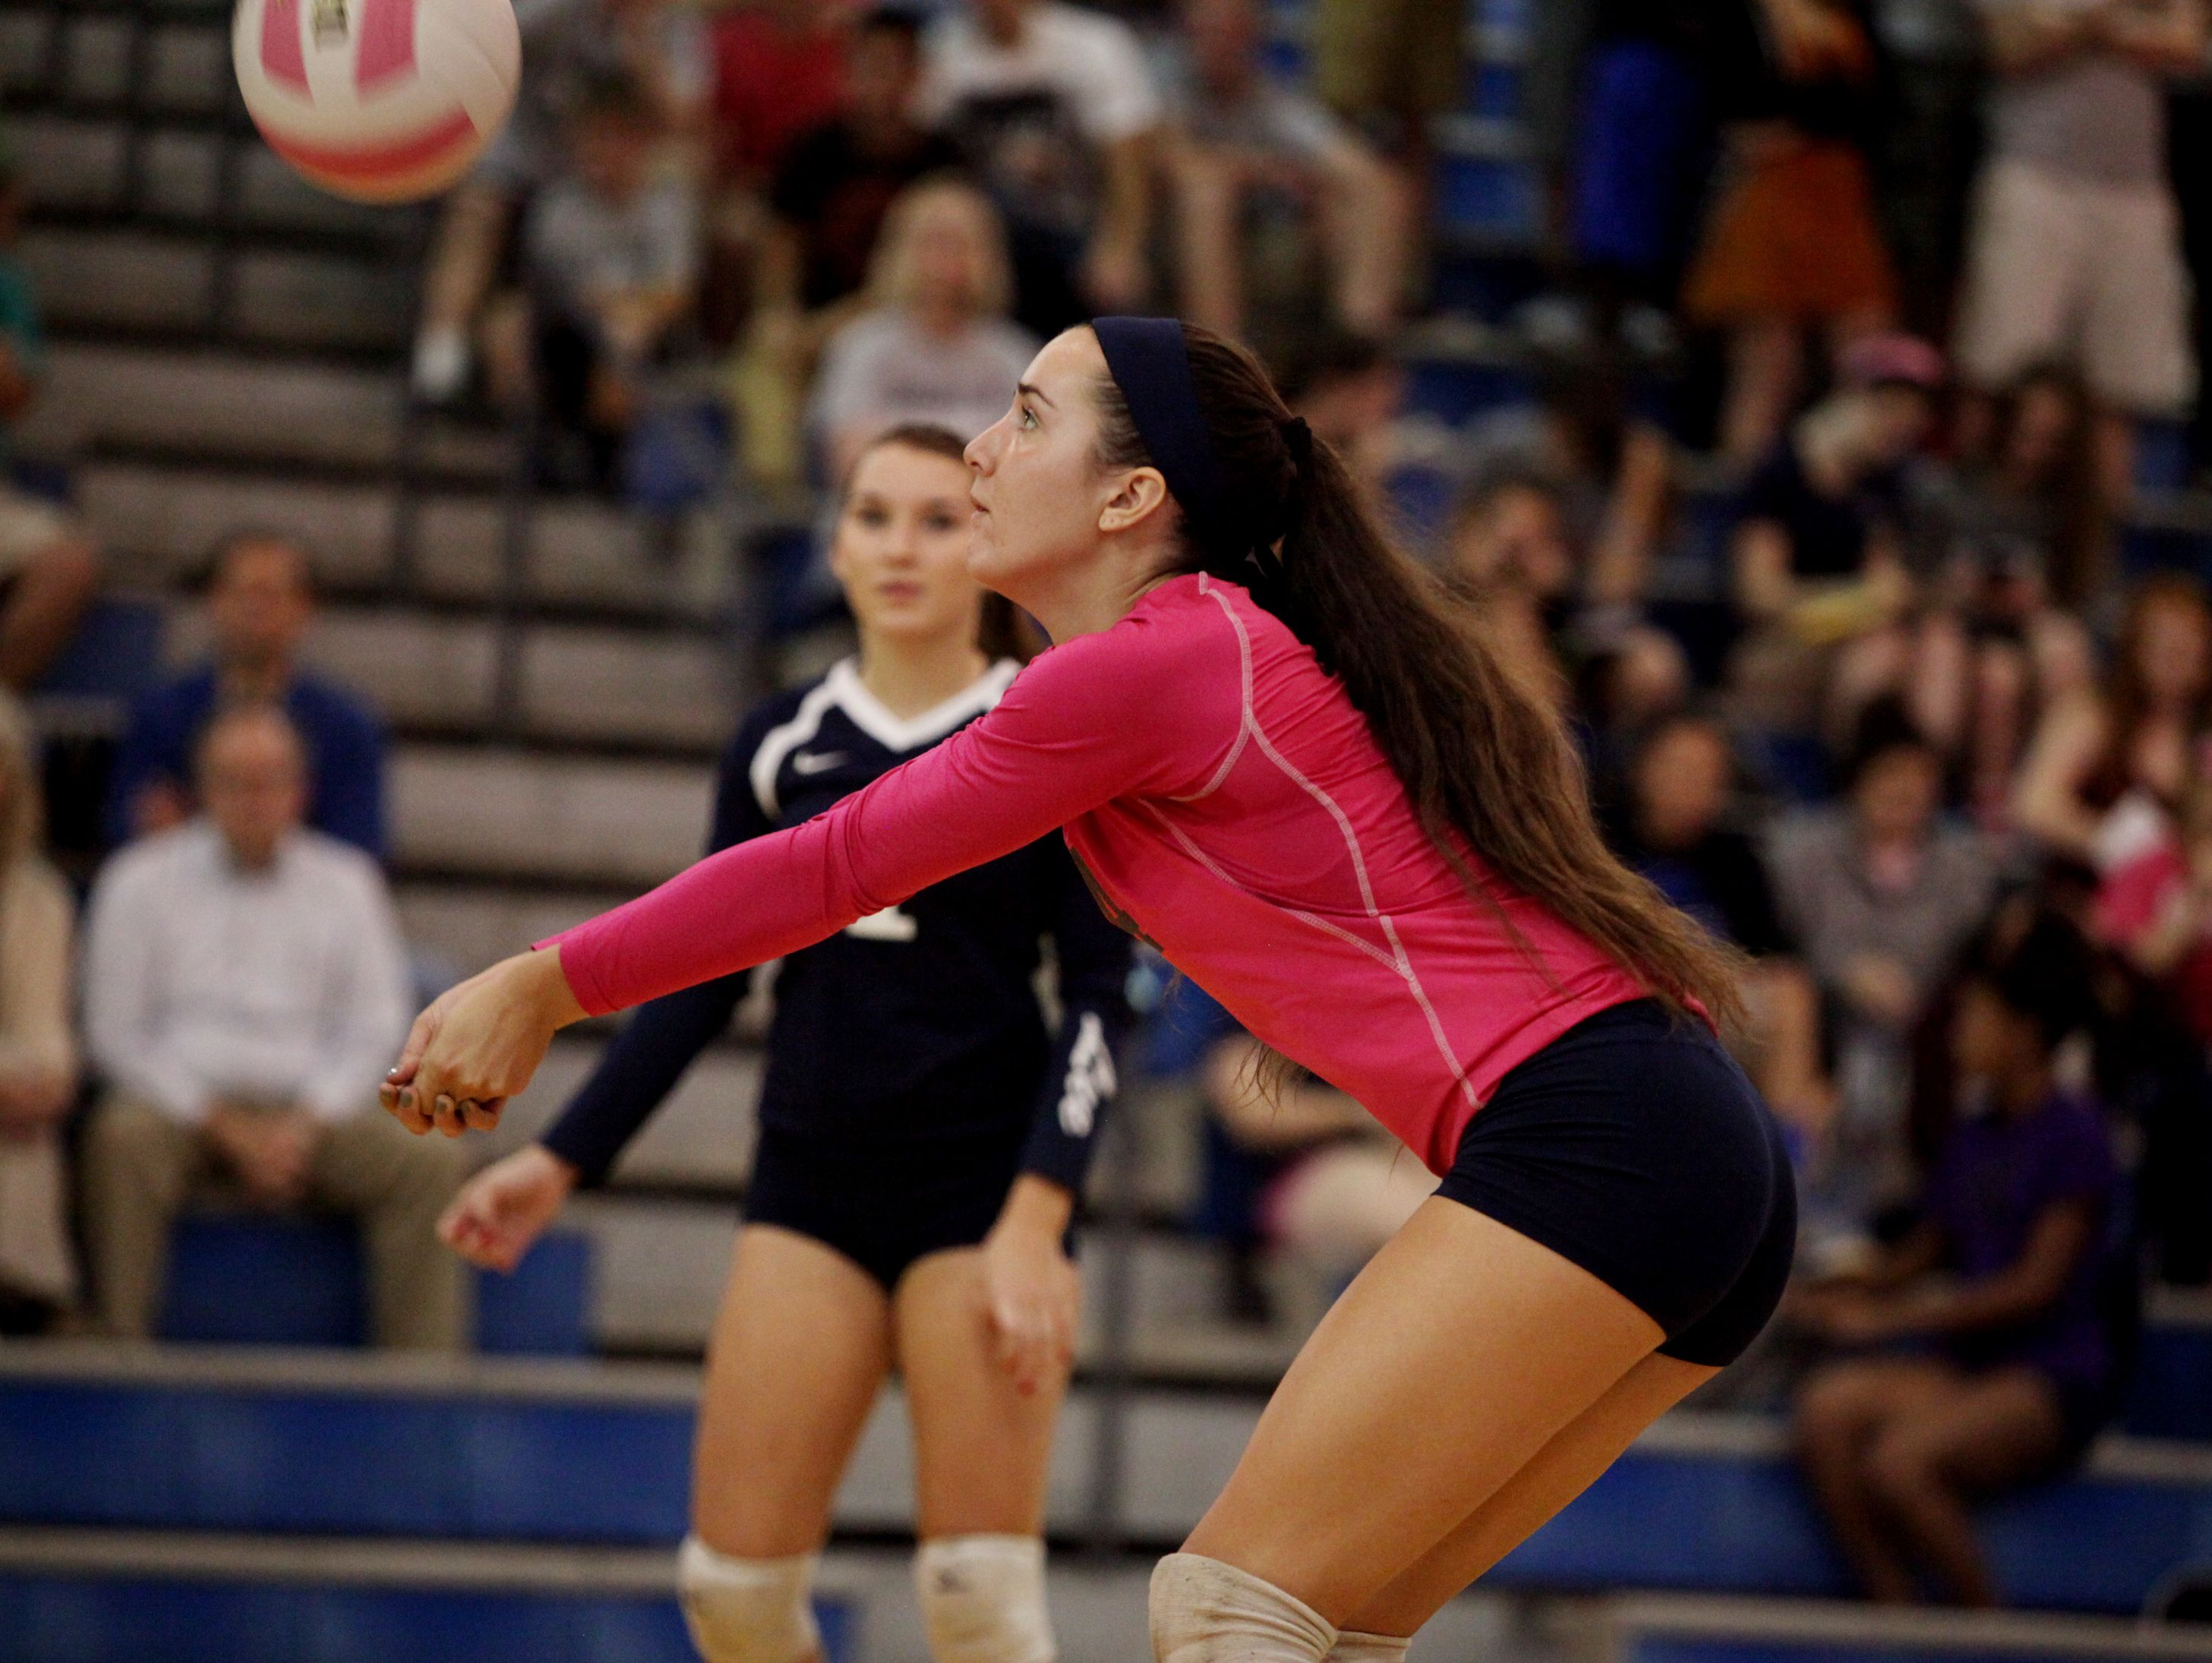 R.E. Lee's MacKensie Bowles bumps the ball during the volleyball match on Tuesday, Oct. 18, 2016 at Fort Defiance.